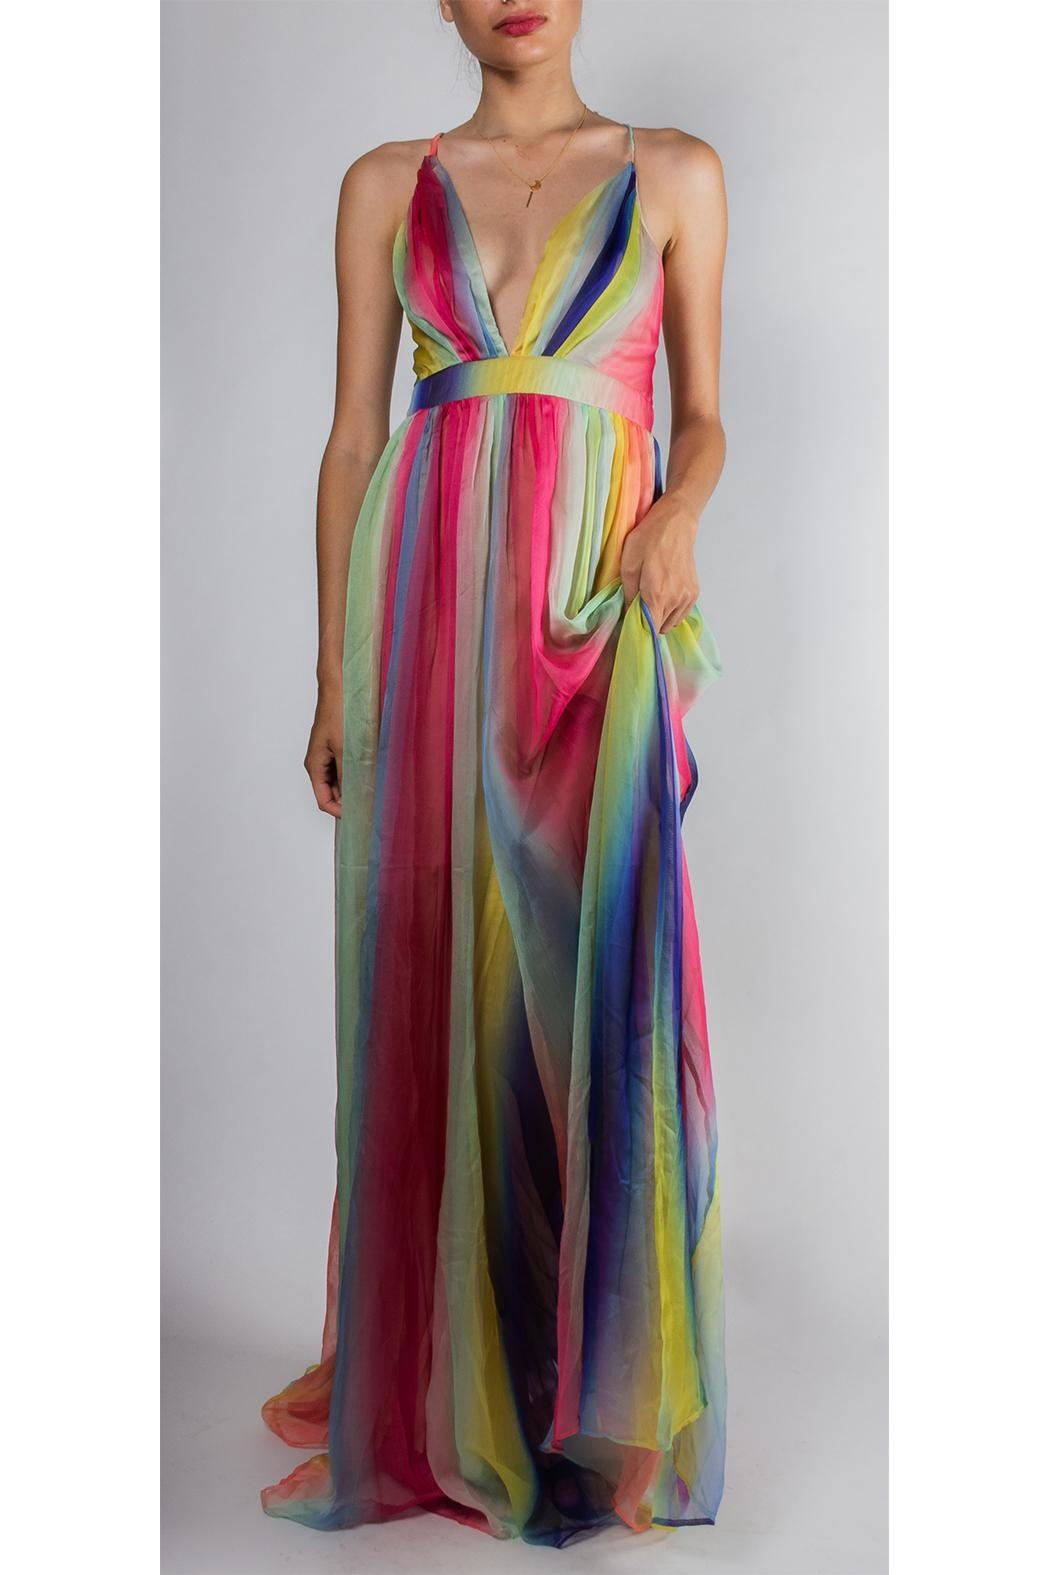 luxxel Rainbow Enchantress Gown - Front Full Image